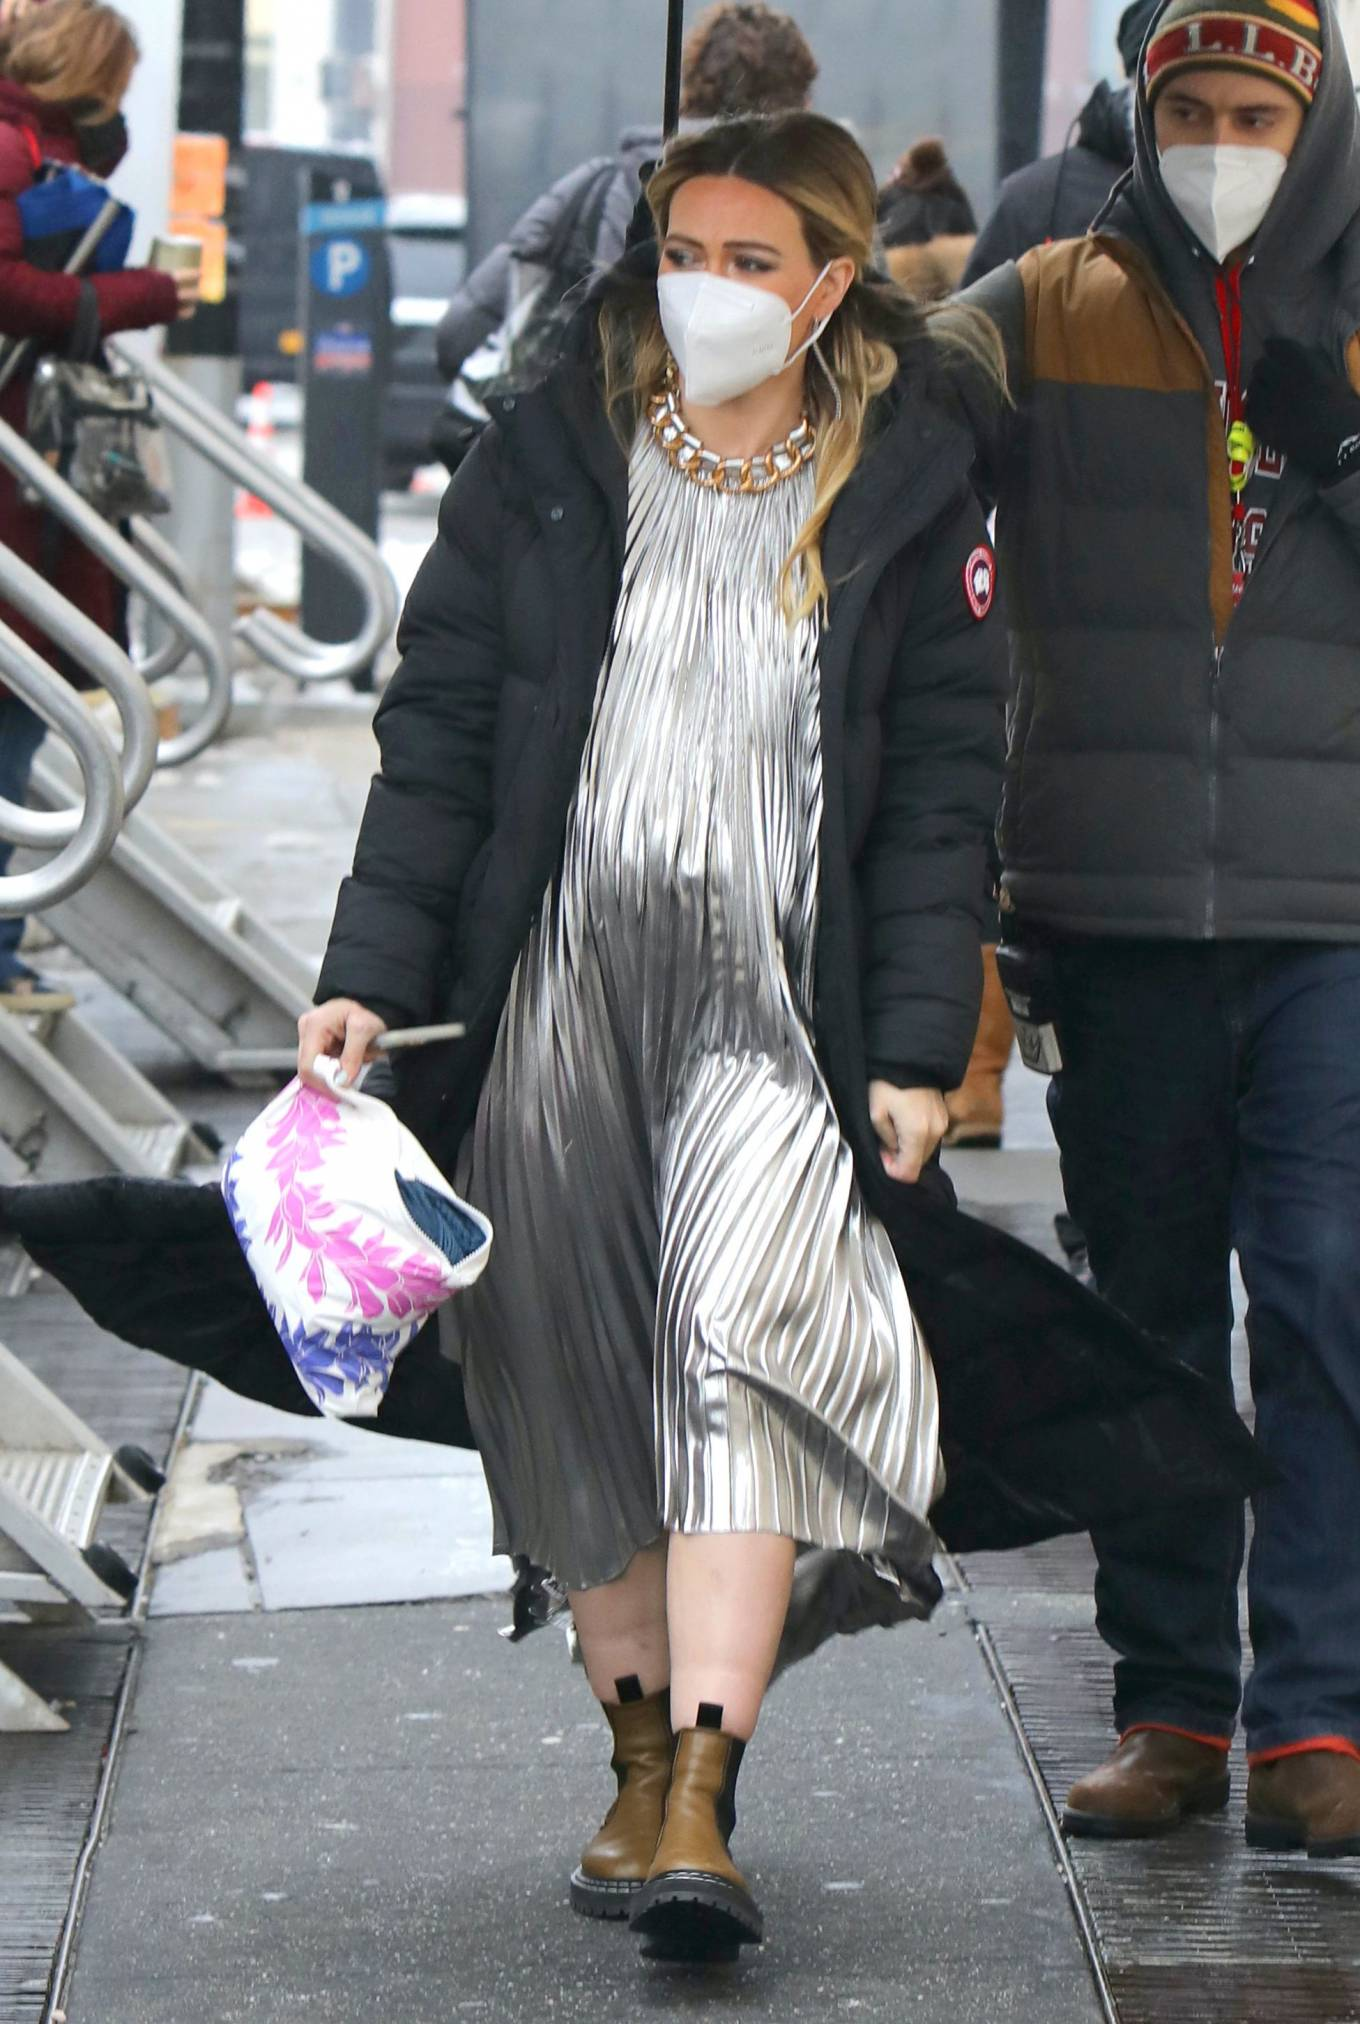 Hilary Duff - Spotted at 'Younger' set in New York